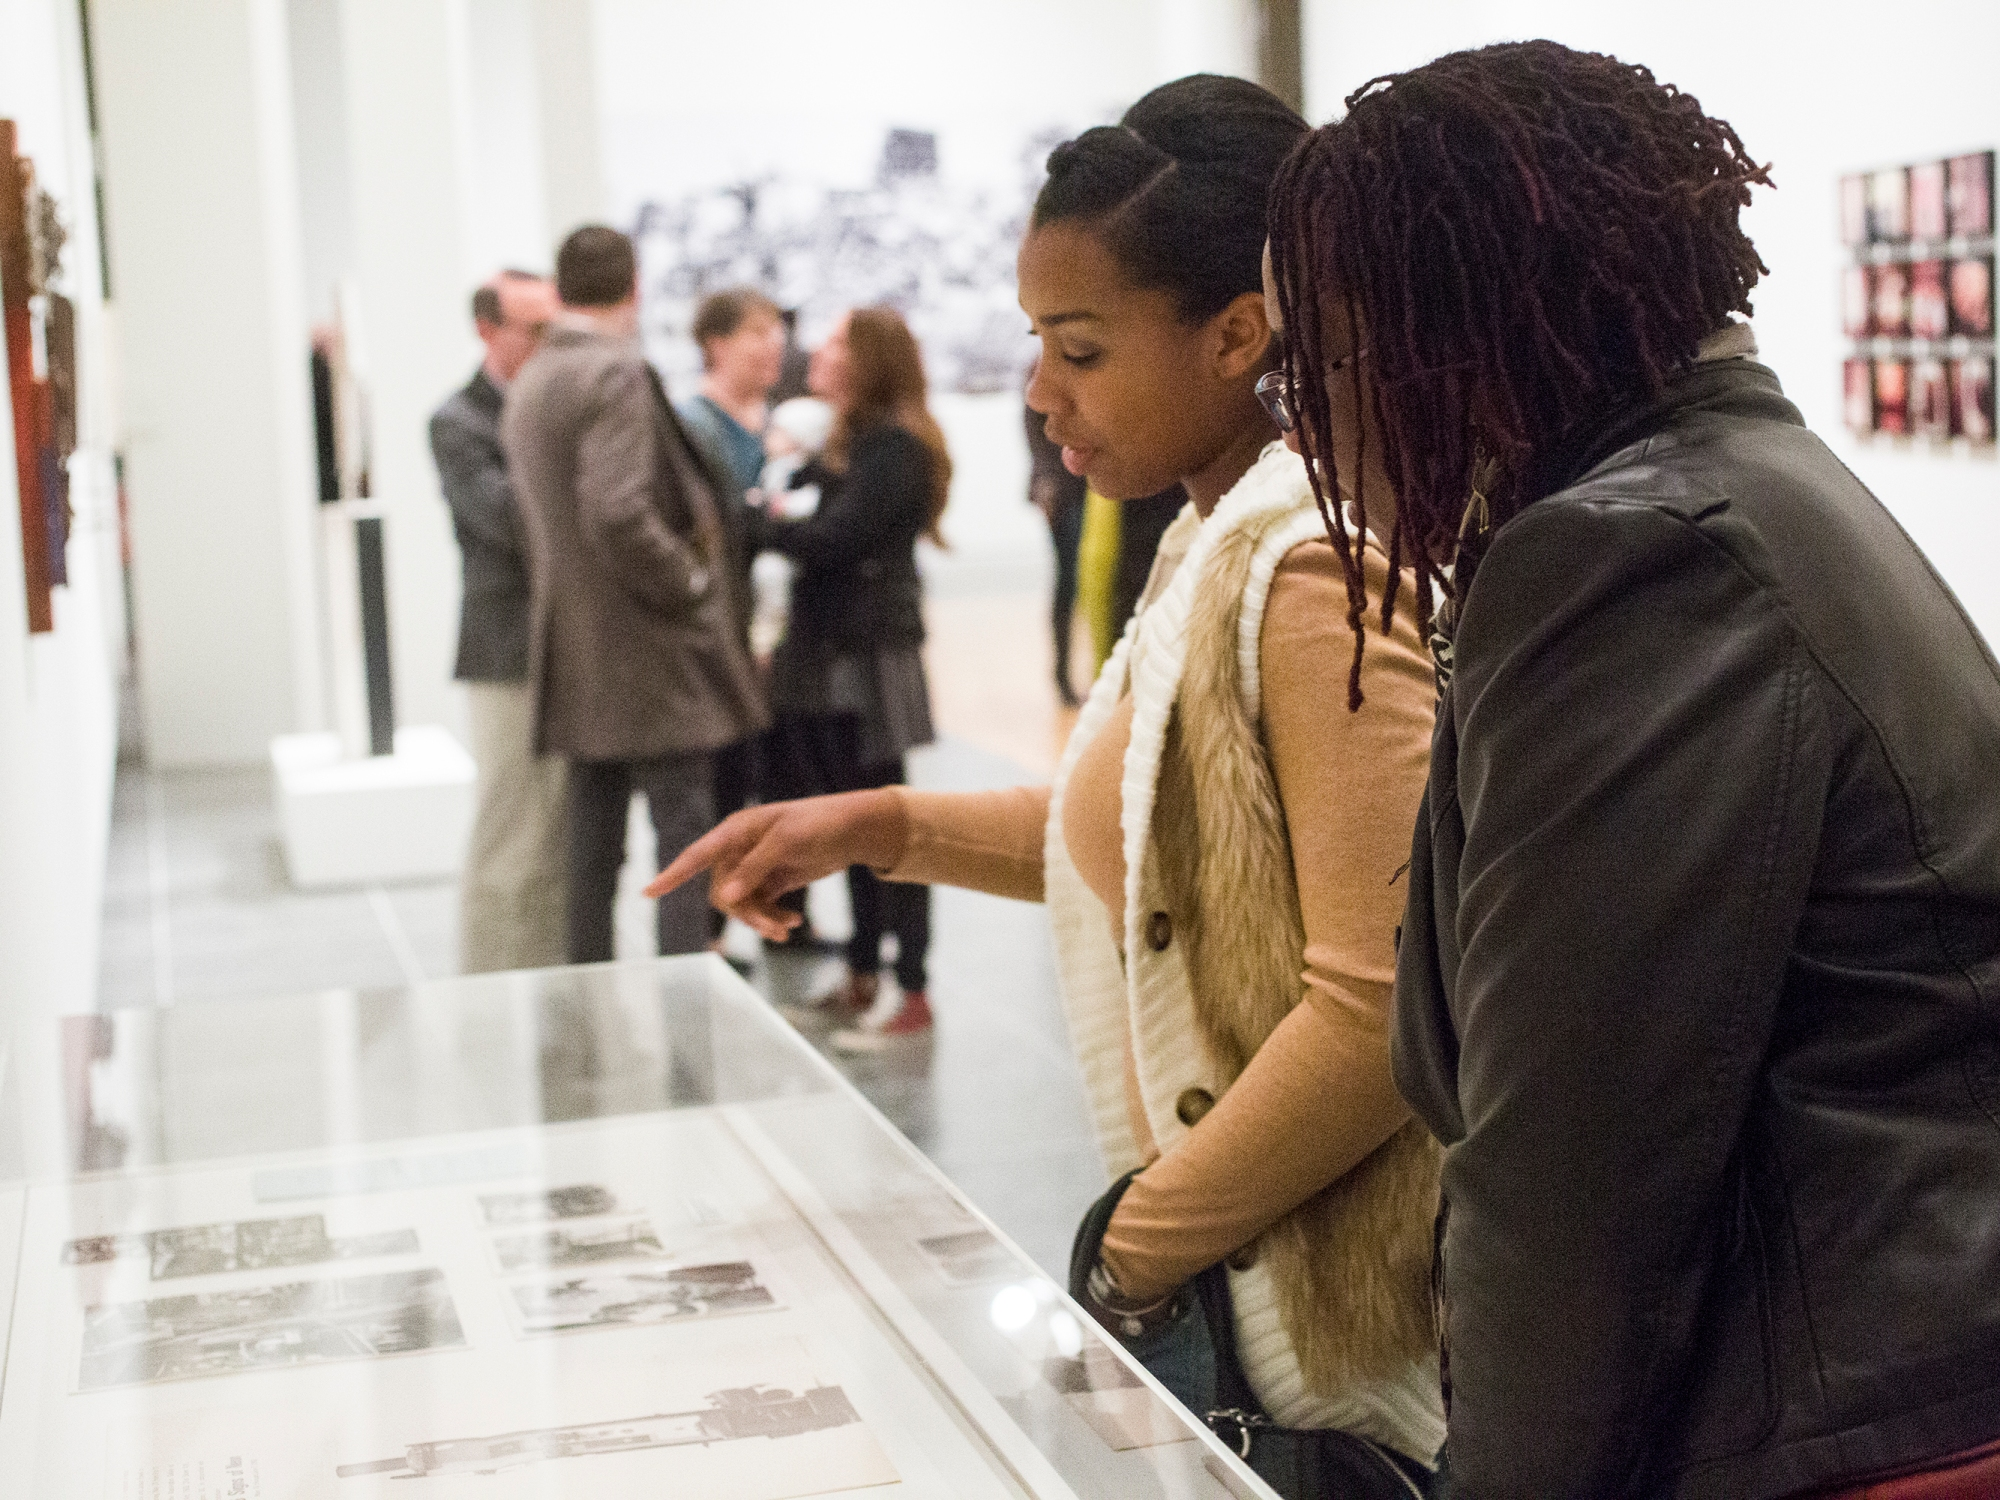 Two museum visitors looking down at photos in a plexiglass display case.